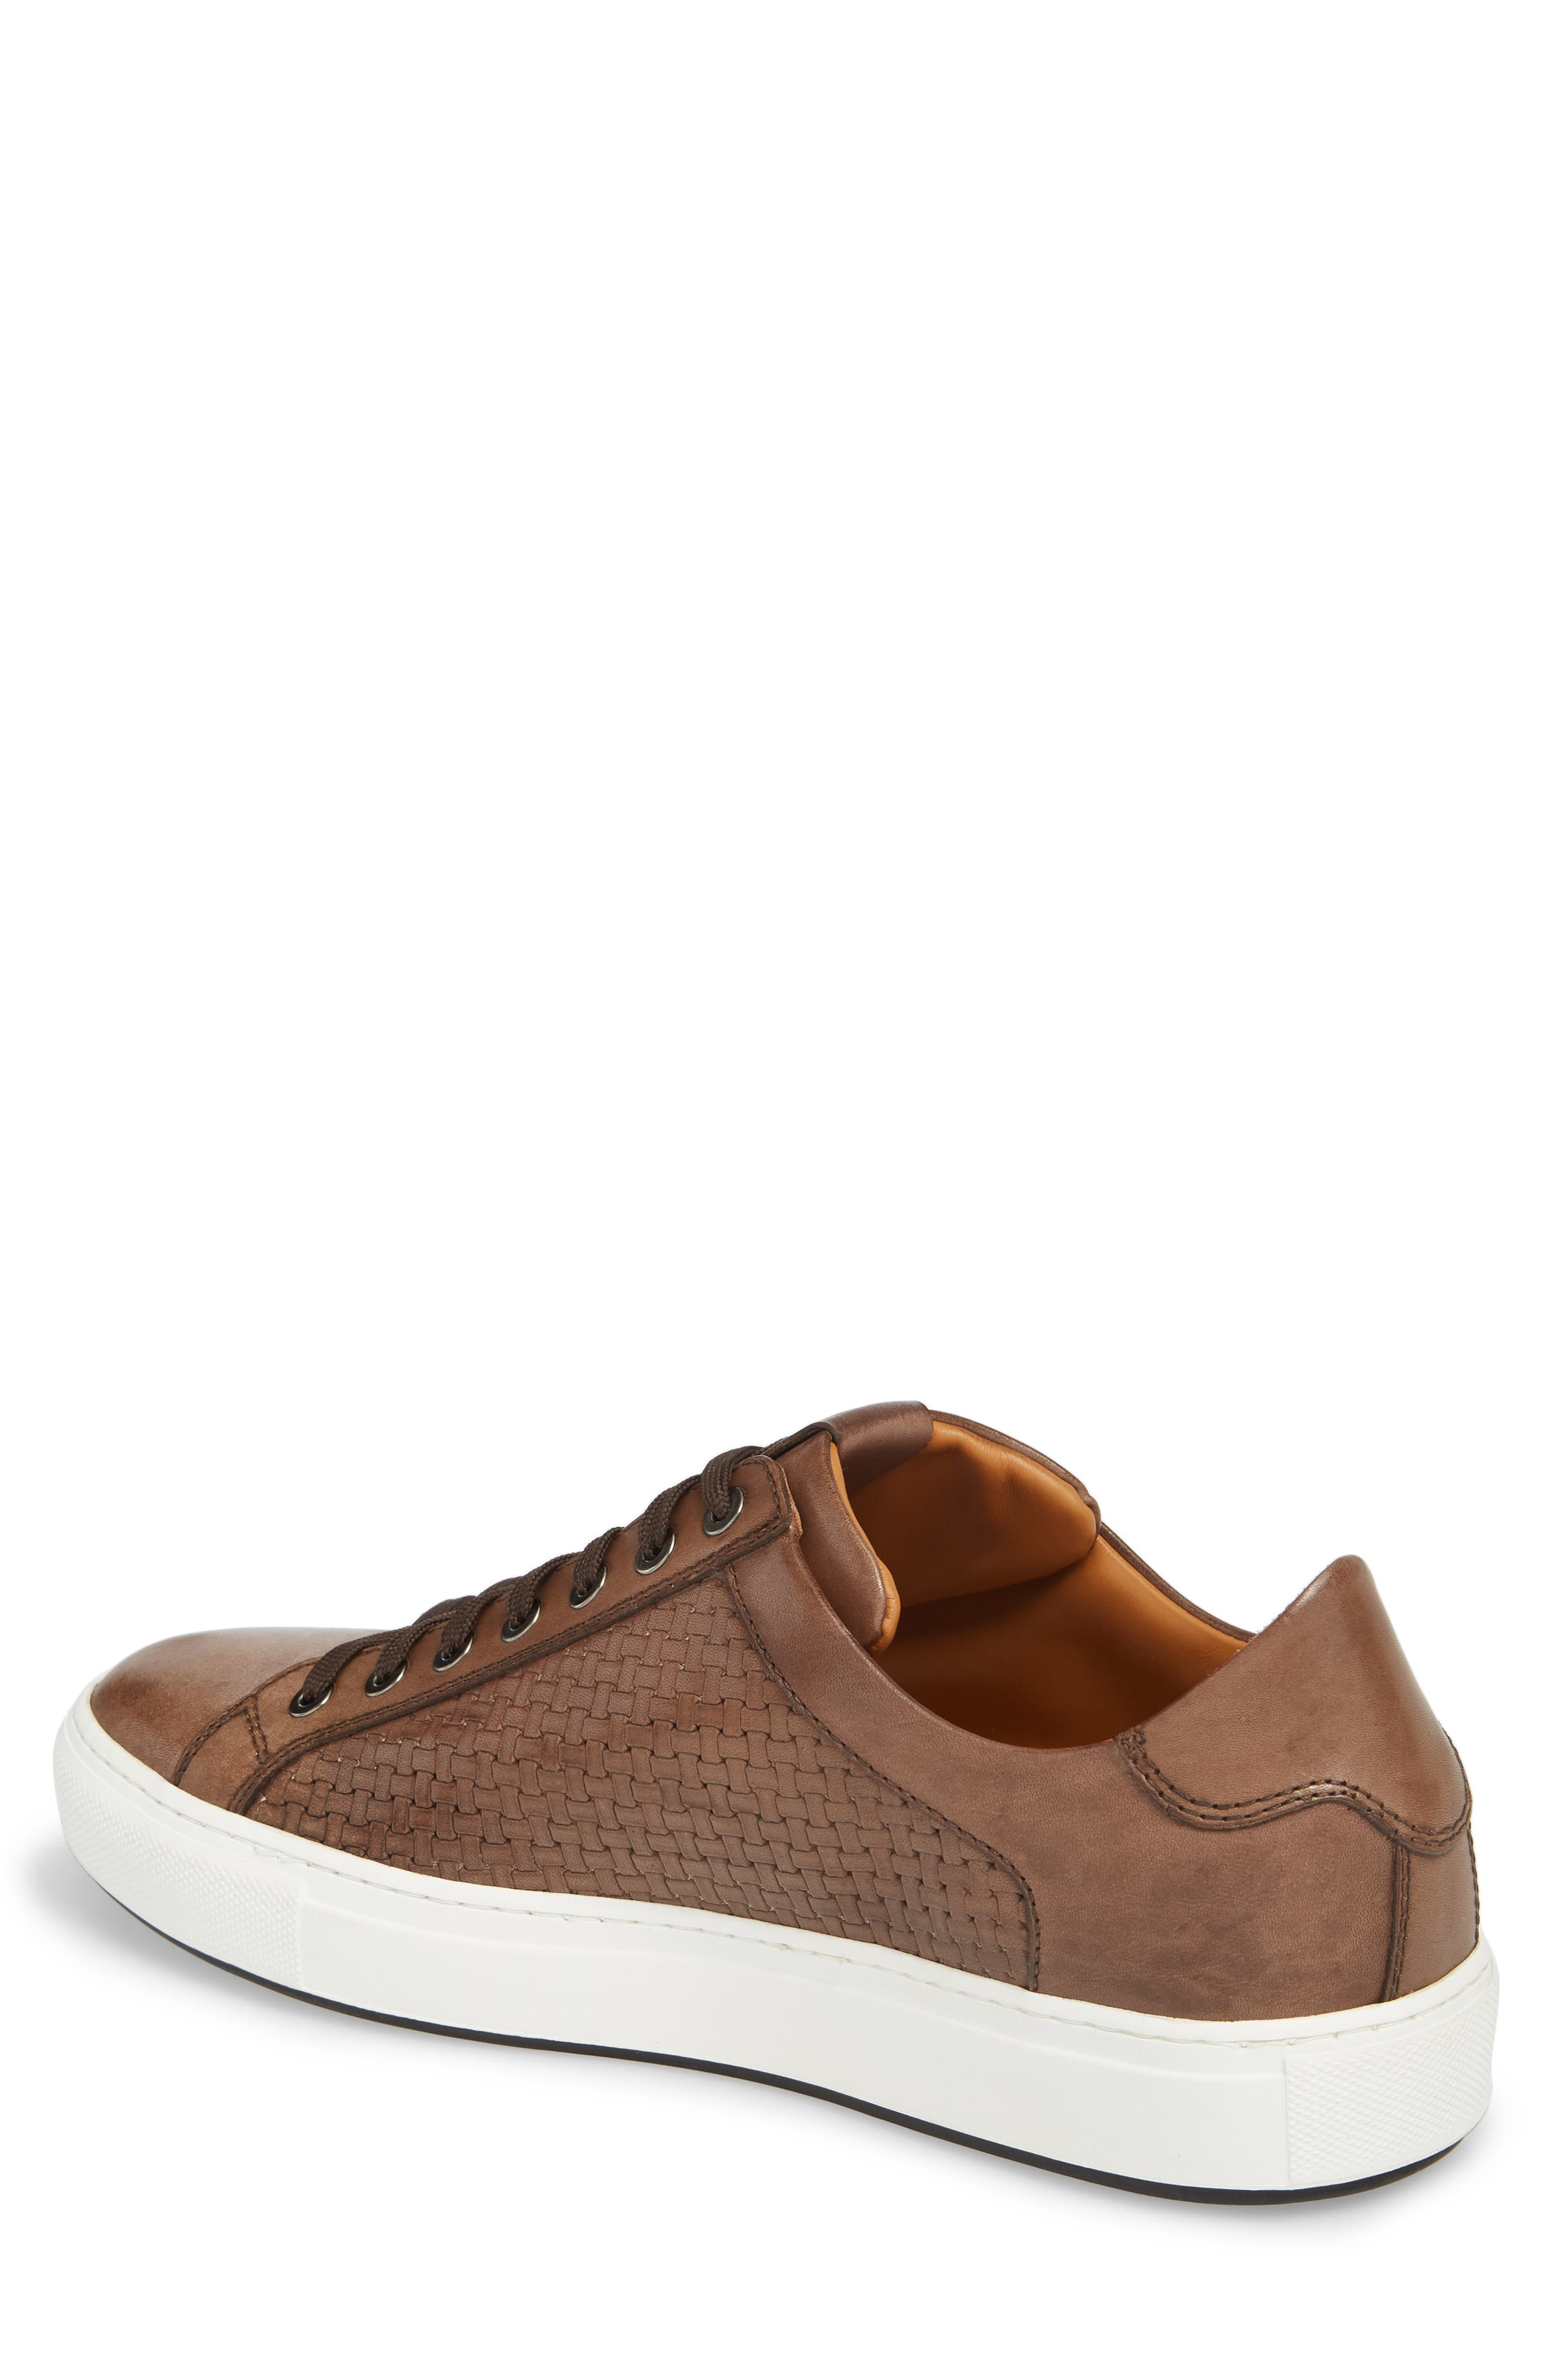 Diego Sneaker,                             Alternate thumbnail 2, color,                             WALNUT